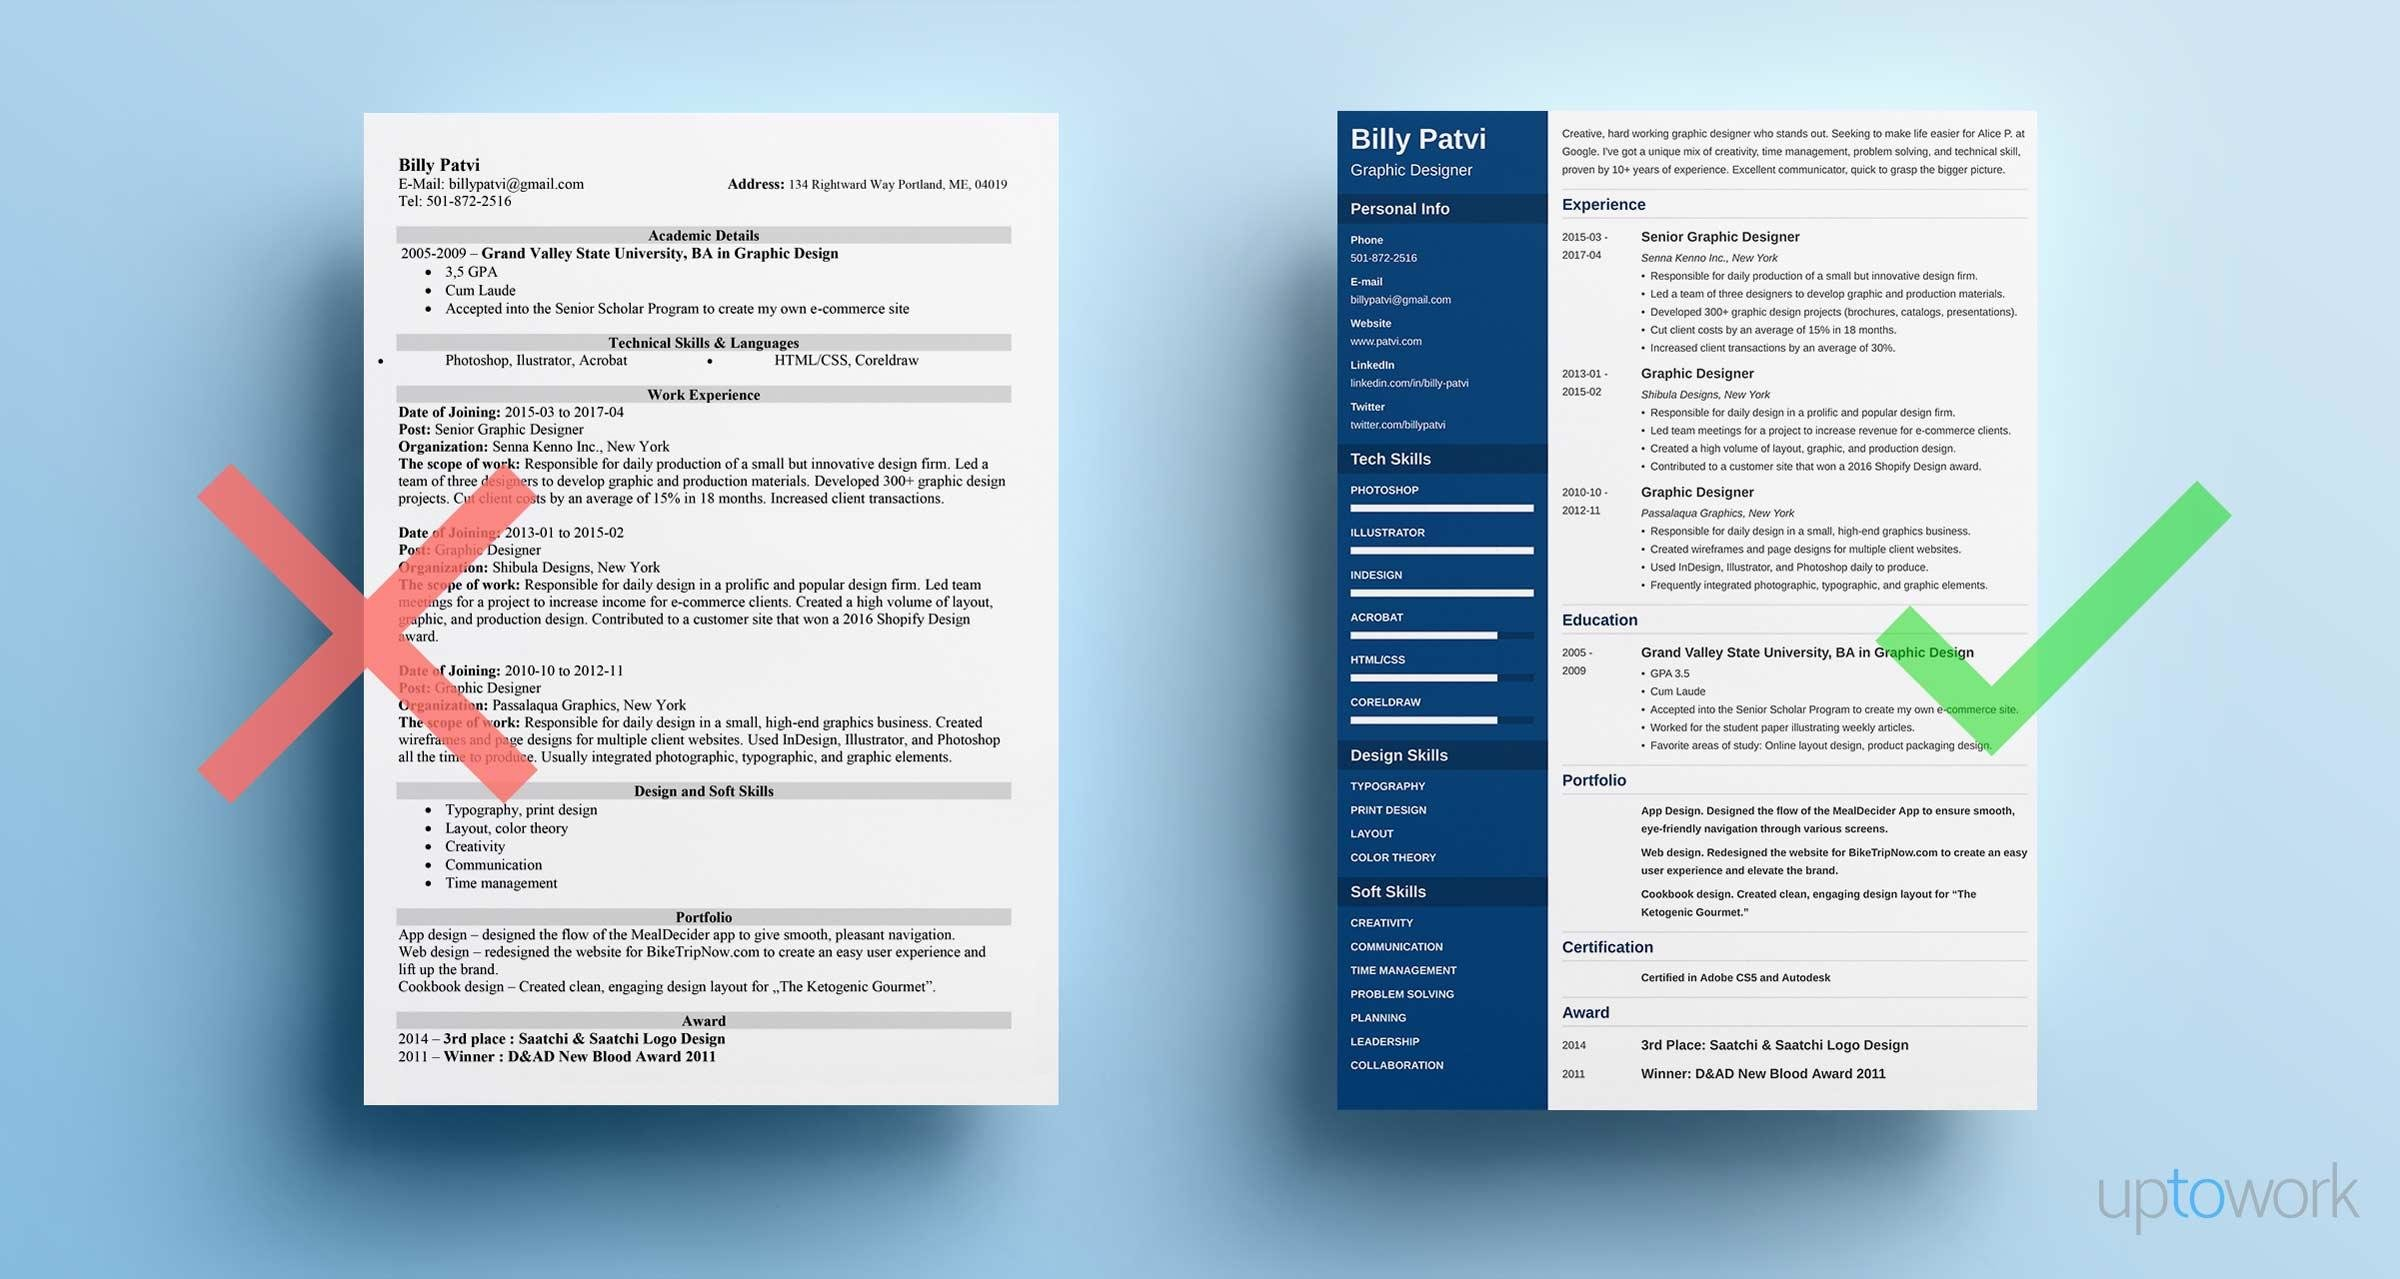 graphic designer resume examples and design tips for samples professional photography Resume Graphic Design Resume 2020